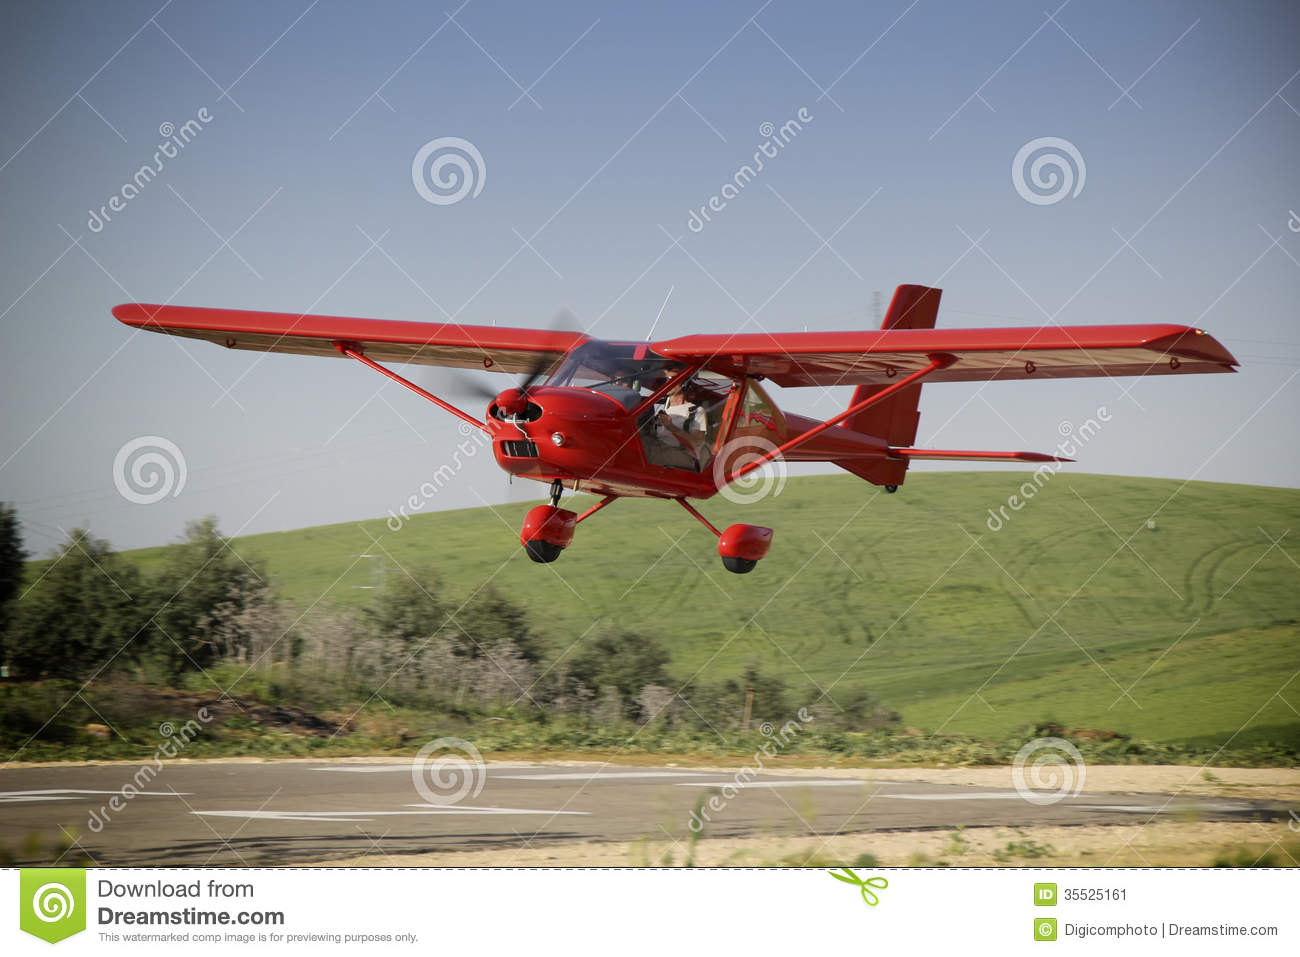 Red plane manned by student and teacher of a class flight practice, Jaen, Andalusia, Spain